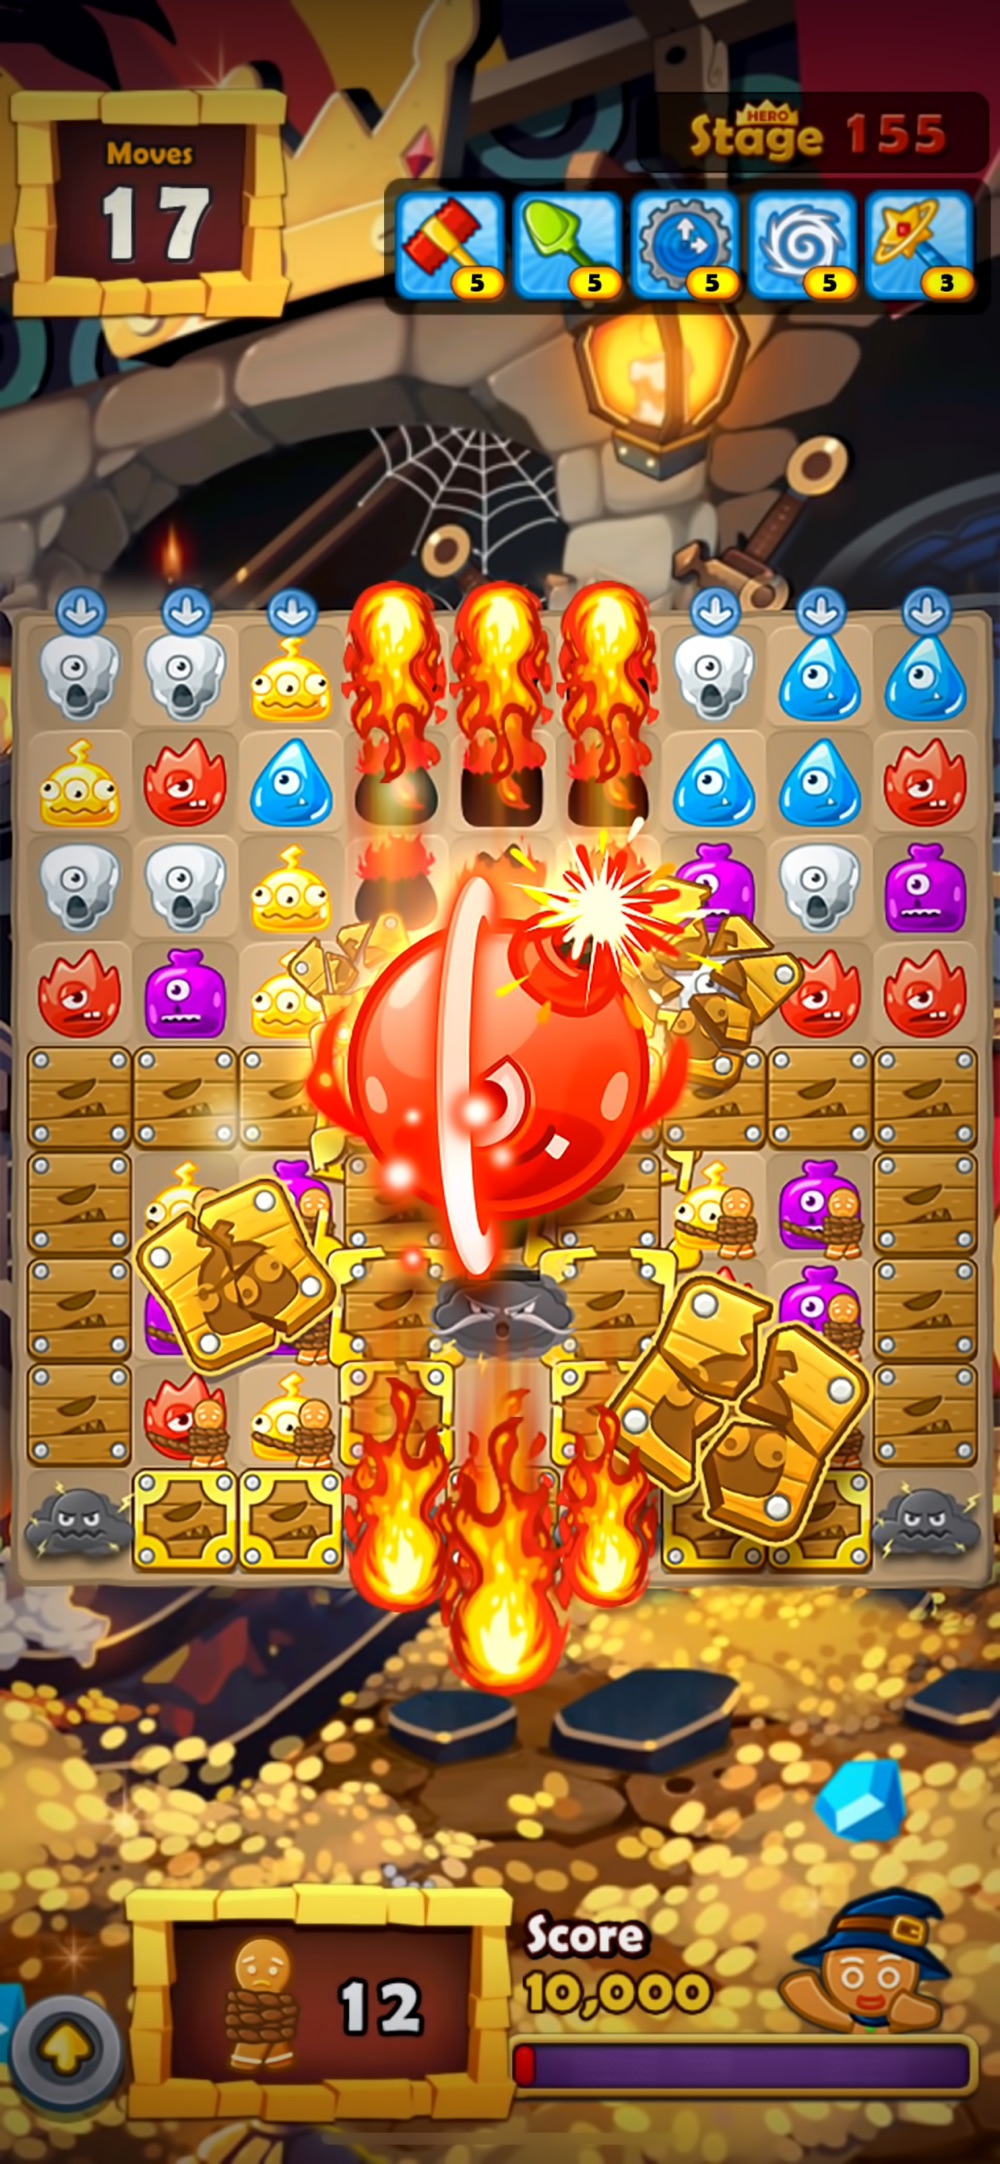 Monster Busters:Match 3 Puzzle Cheat Codes